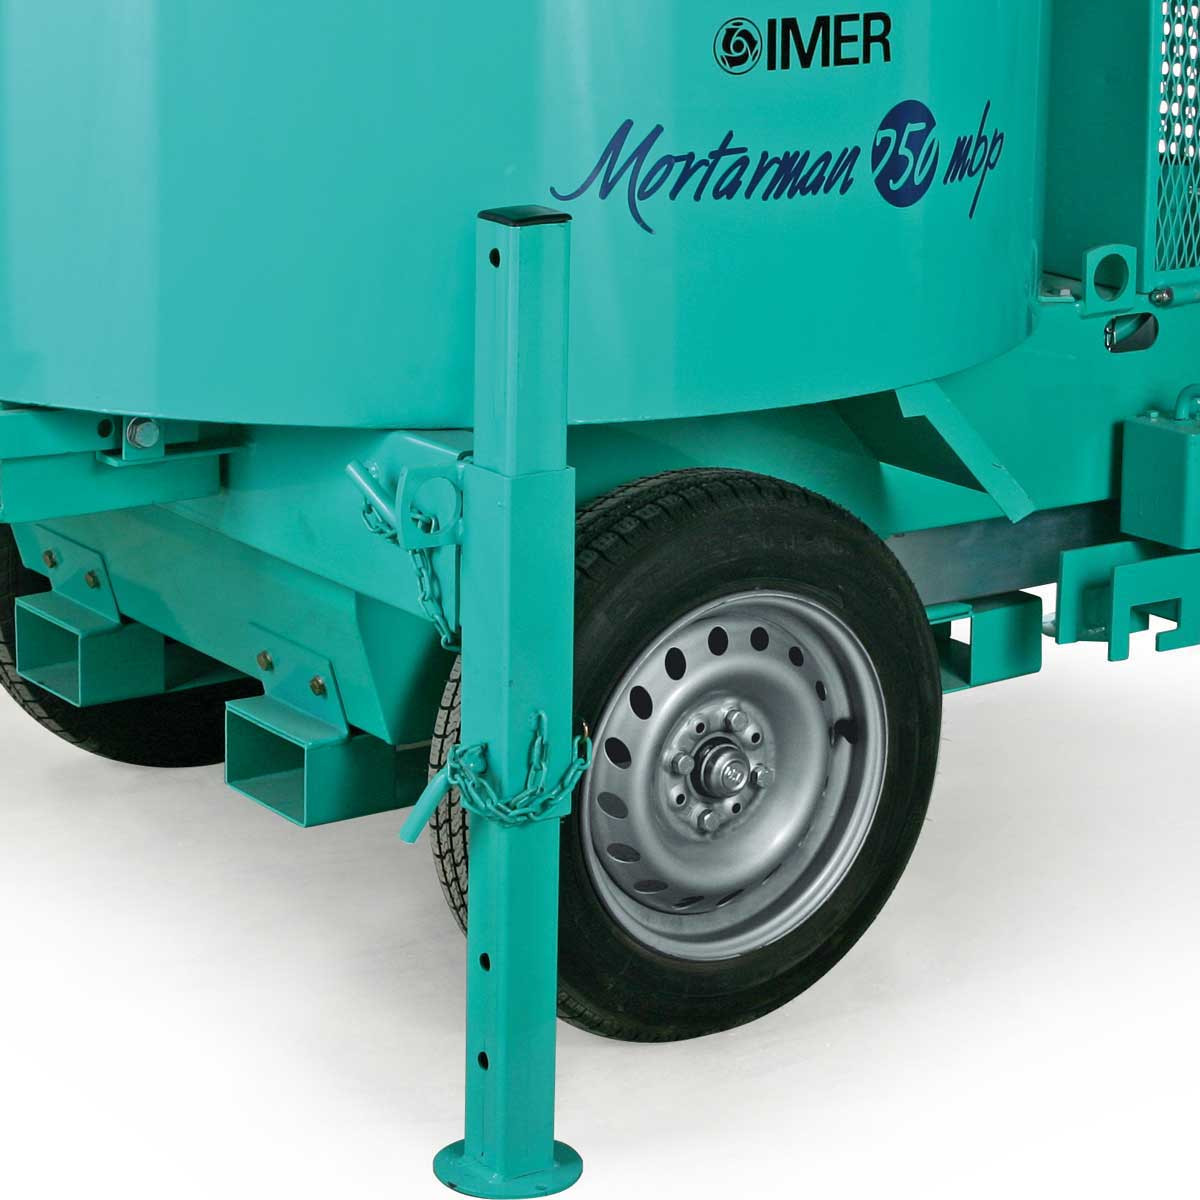 Imer Mortarman 750 Mixer wheels